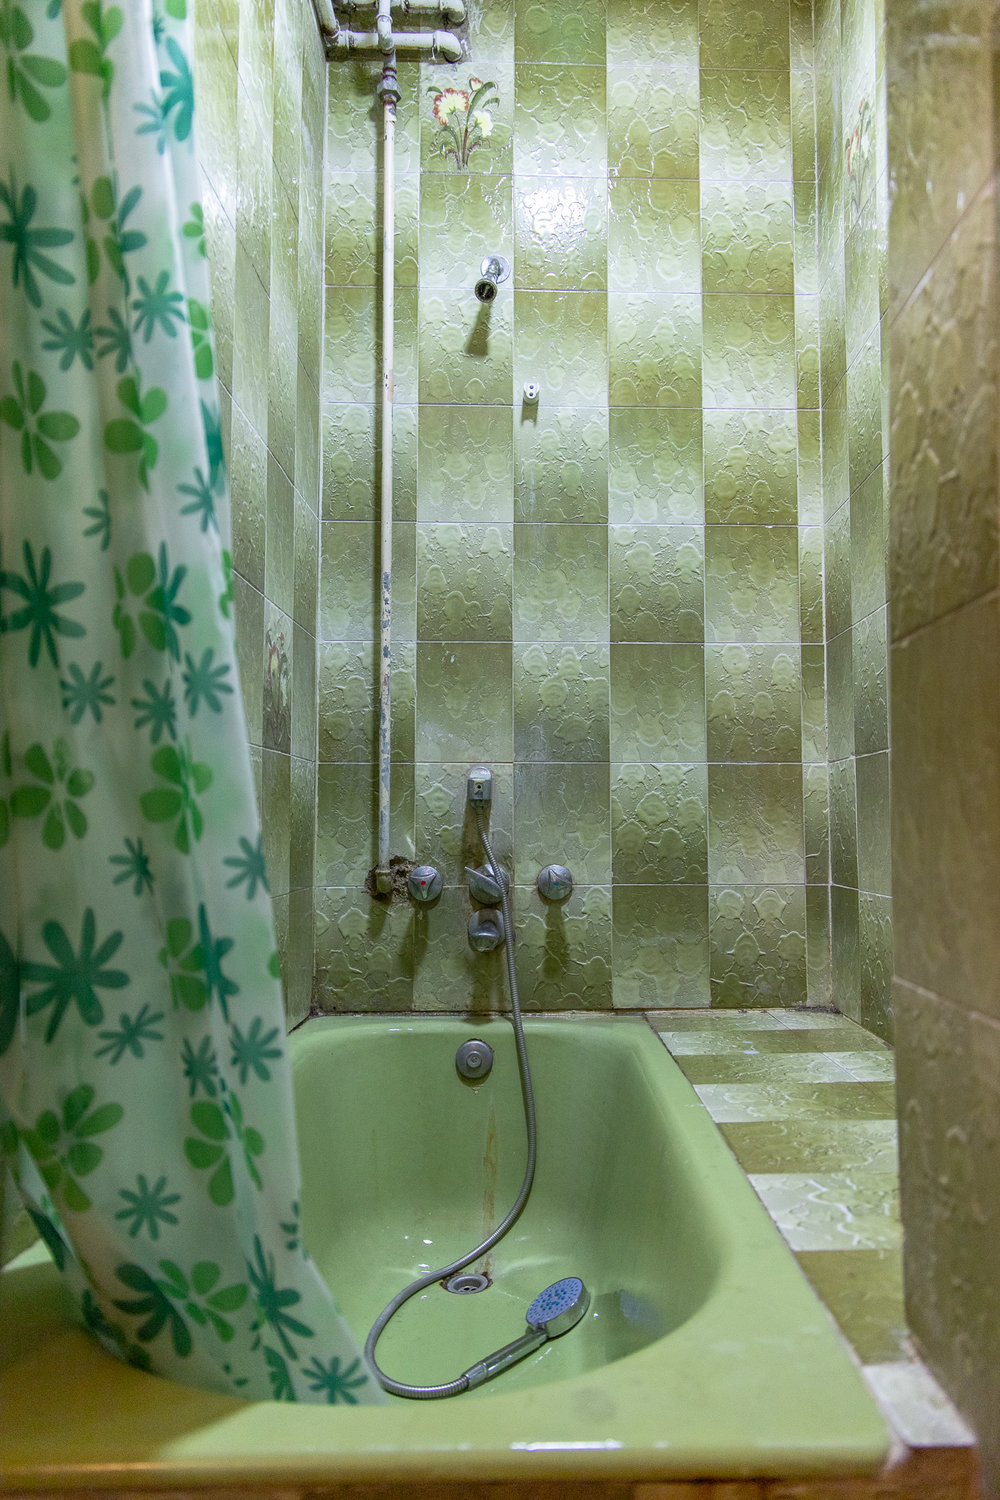 The green theme really works in the bathroom